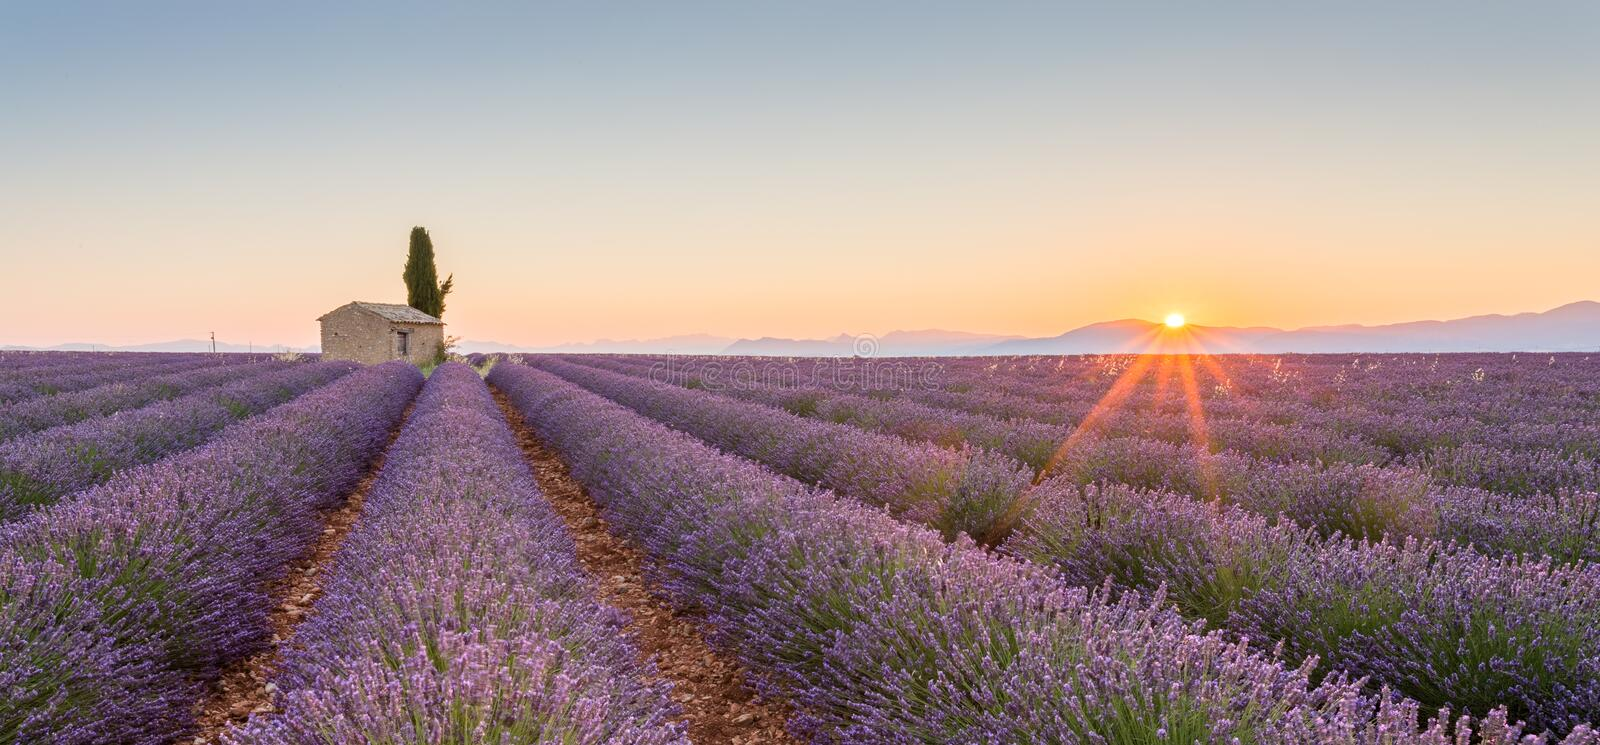 Provence, France, Valensole Plateau with purple lavender field royalty free stock images